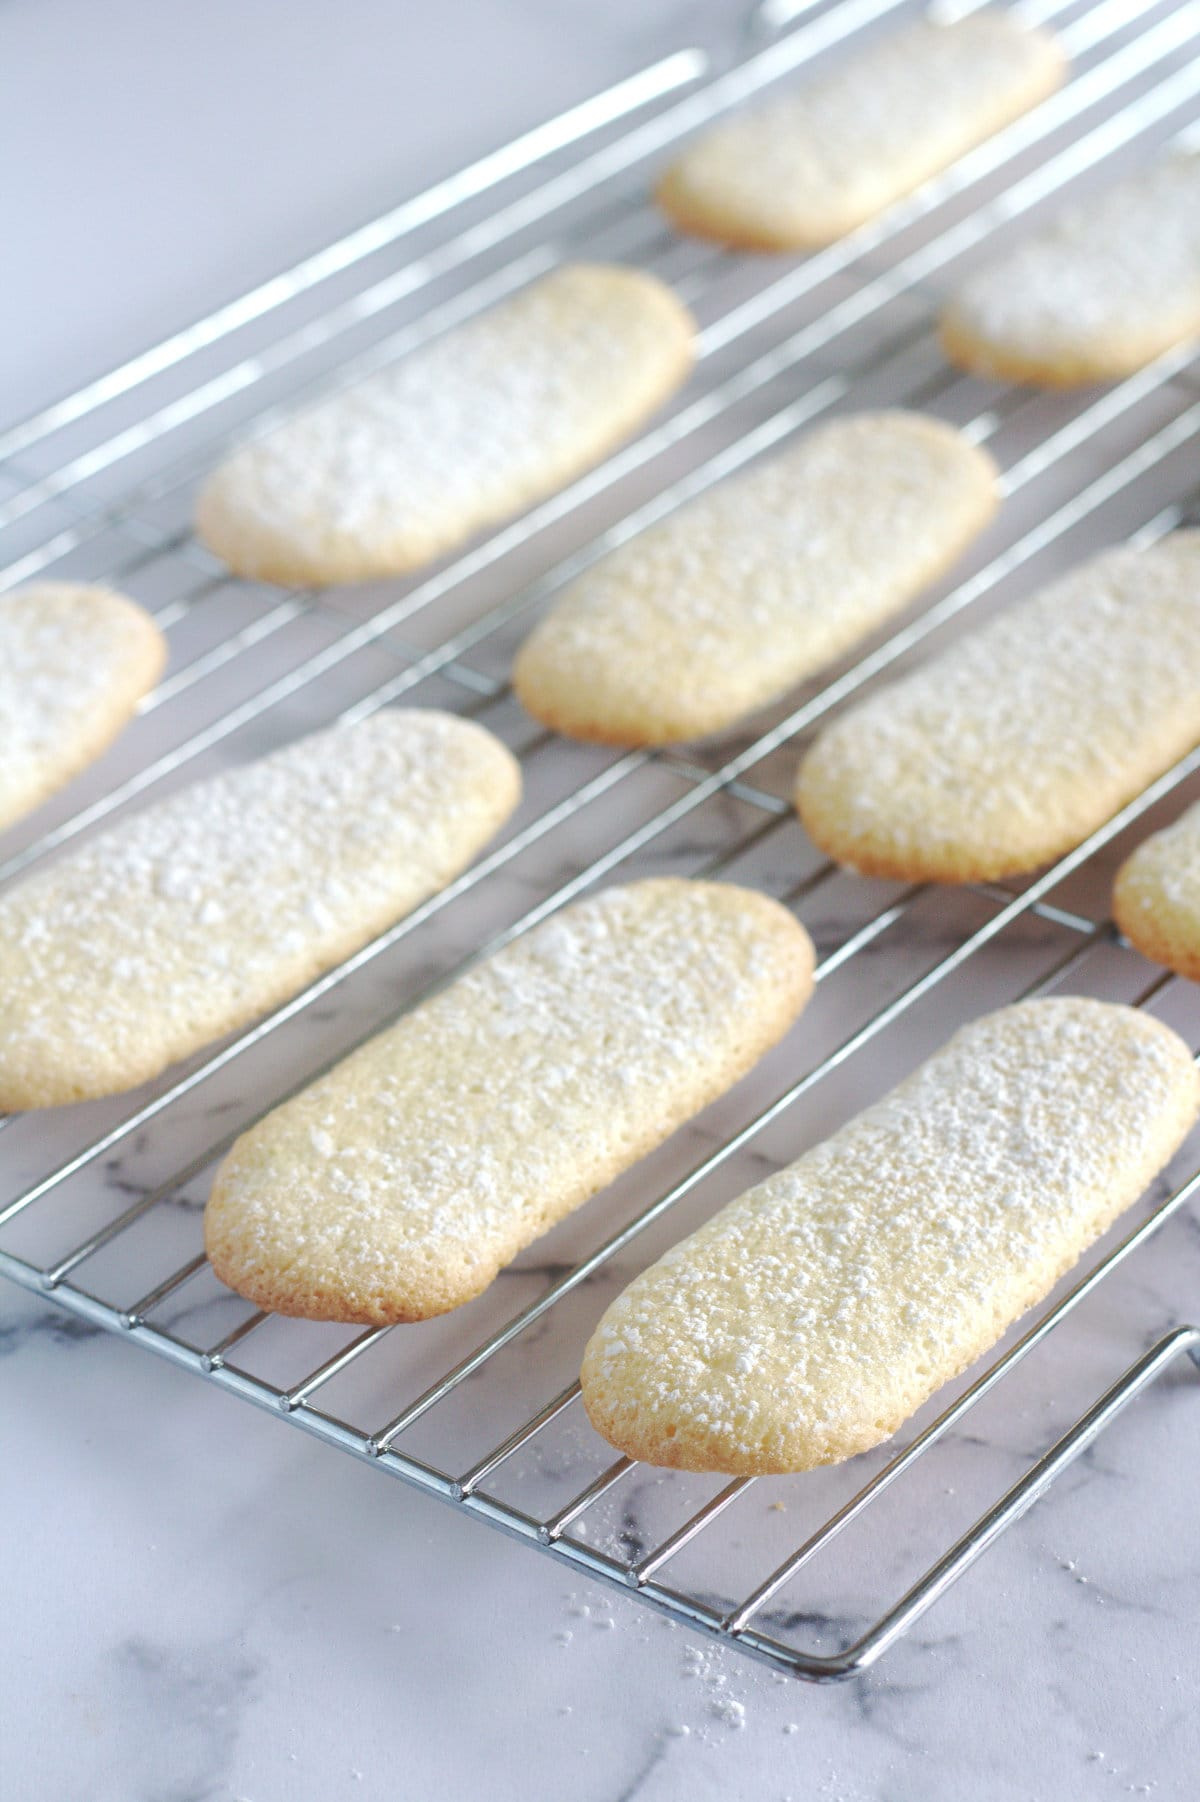 Biscuits on a wire cooling rack.